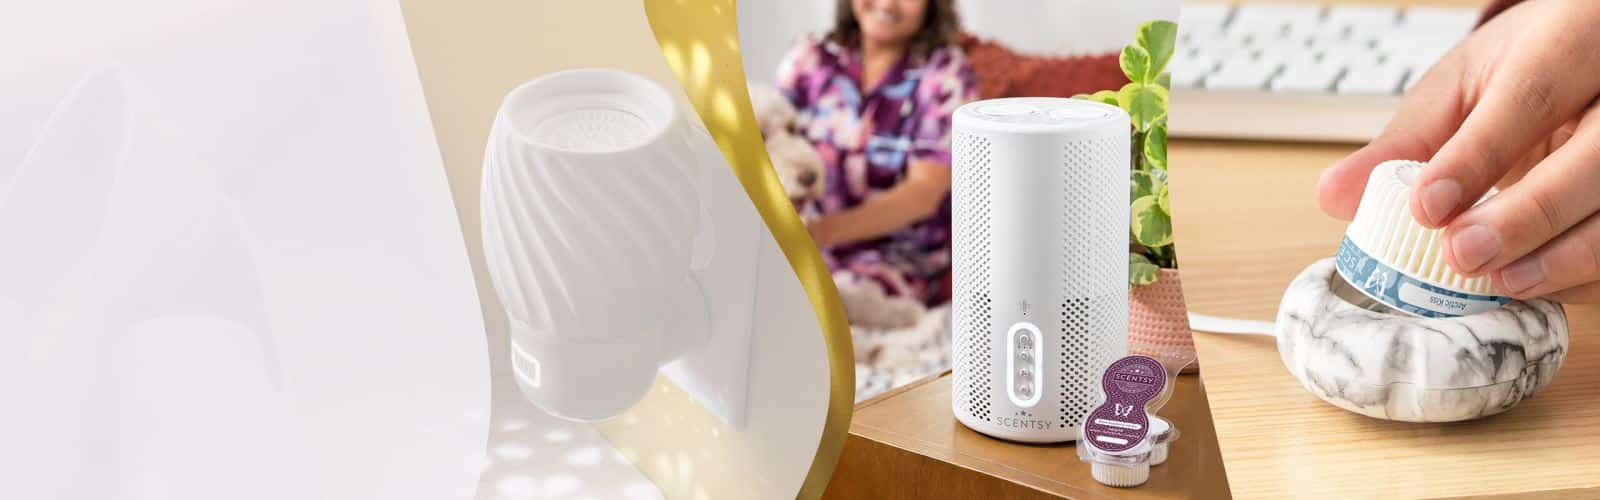 Scentsy fan diffusers Pods